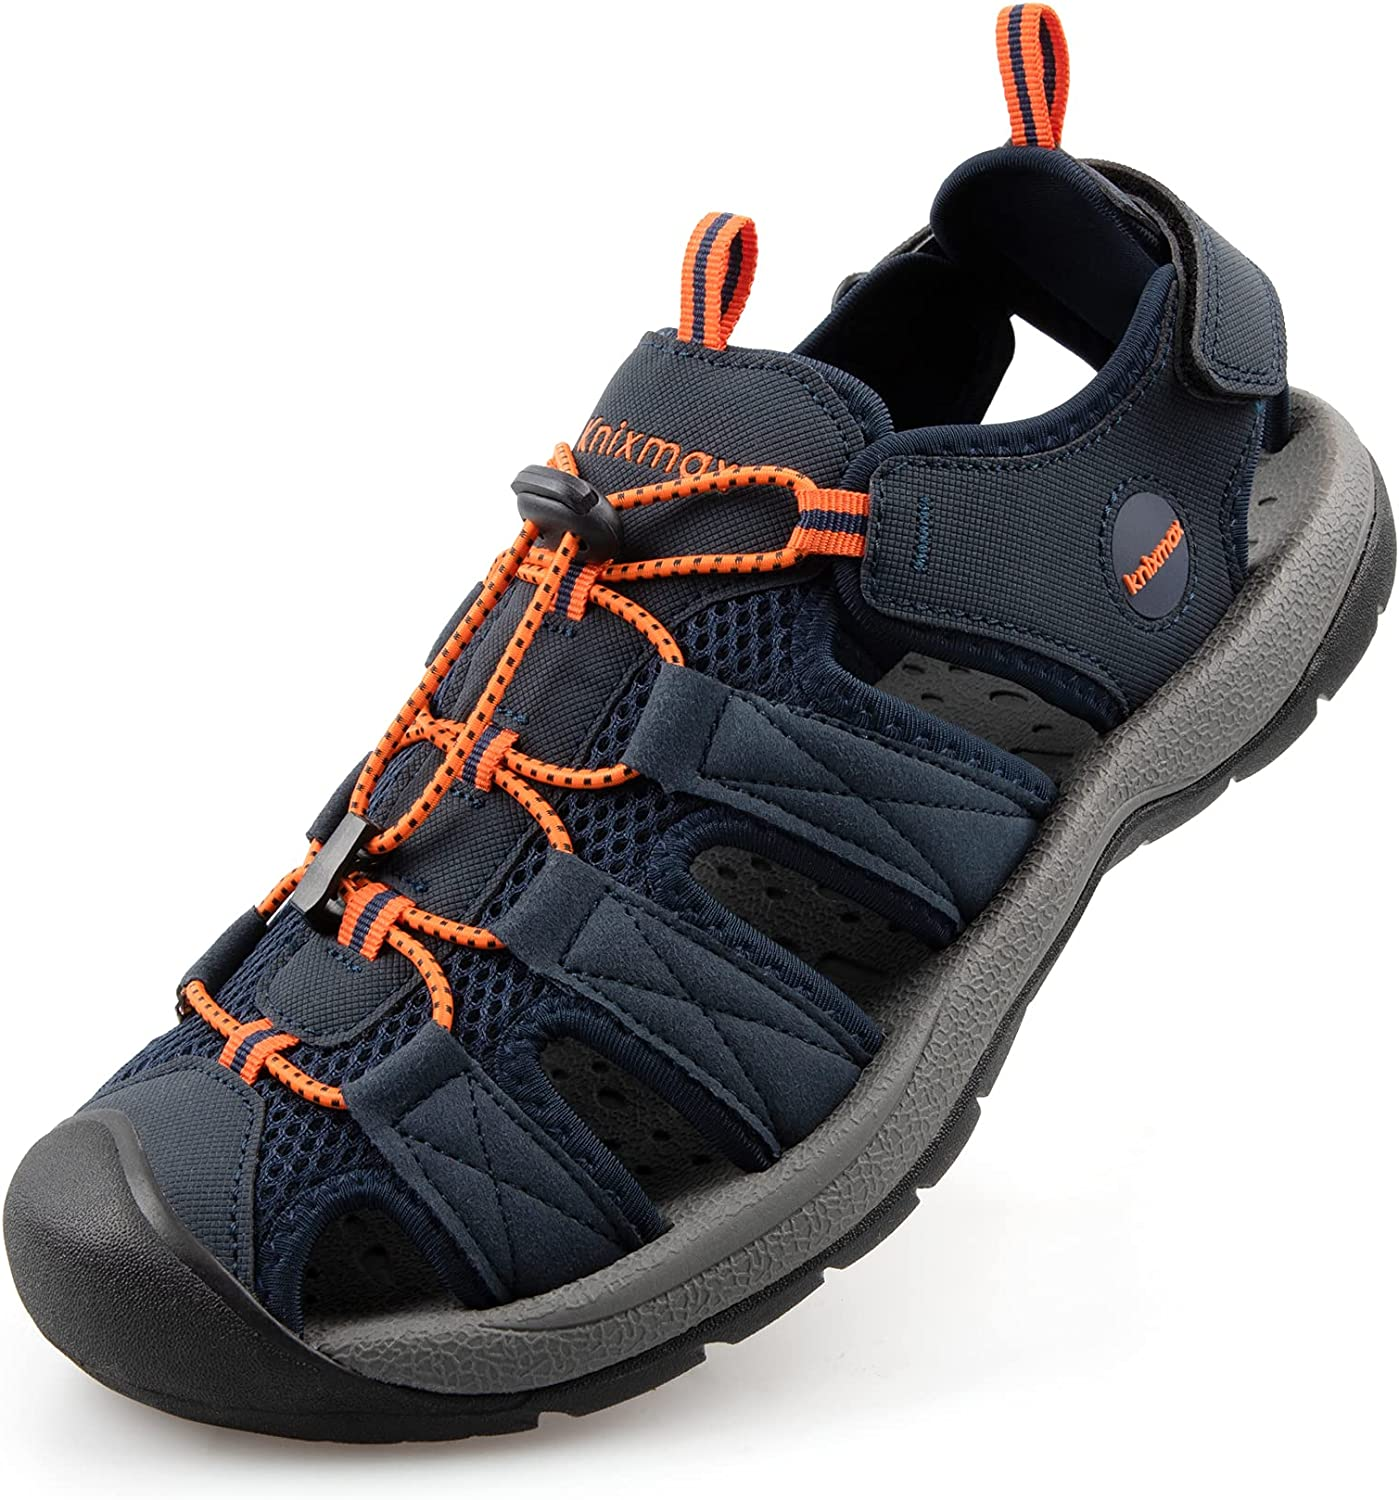 Knixmax Women's Men's Hiking 2021 Mail order new Sandals Athletic Closed Toe S Sport